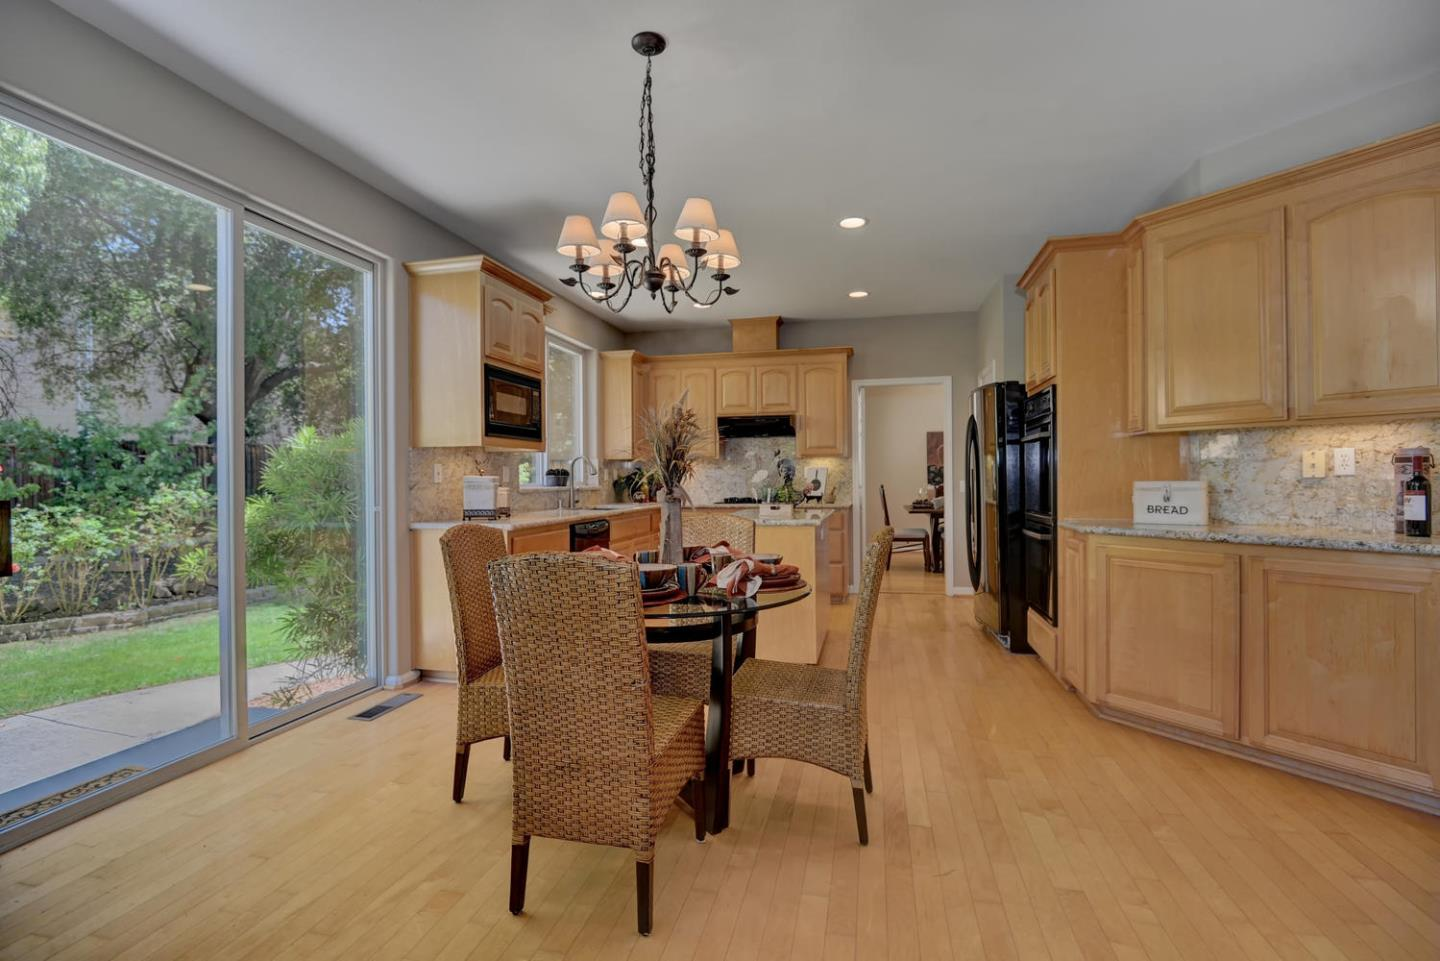 Additional photo for property listing at 2555 Magnolia Way  Morgan Hill, Kalifornien 95037 Vereinigte Staaten